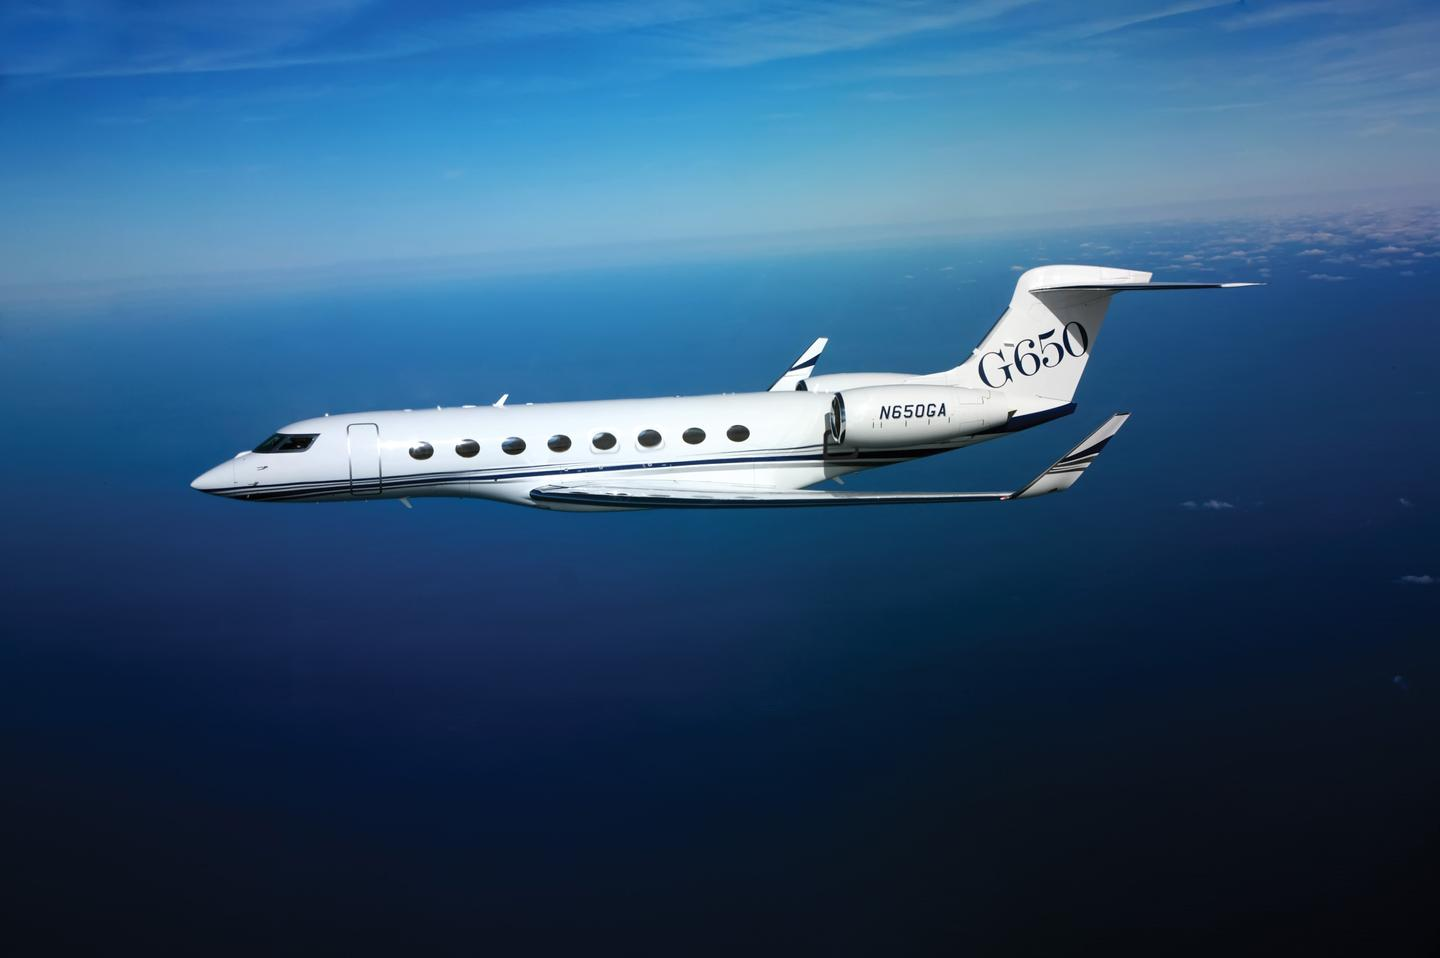 Gulfstream's G650 business jet has received a type certificate from the FAA